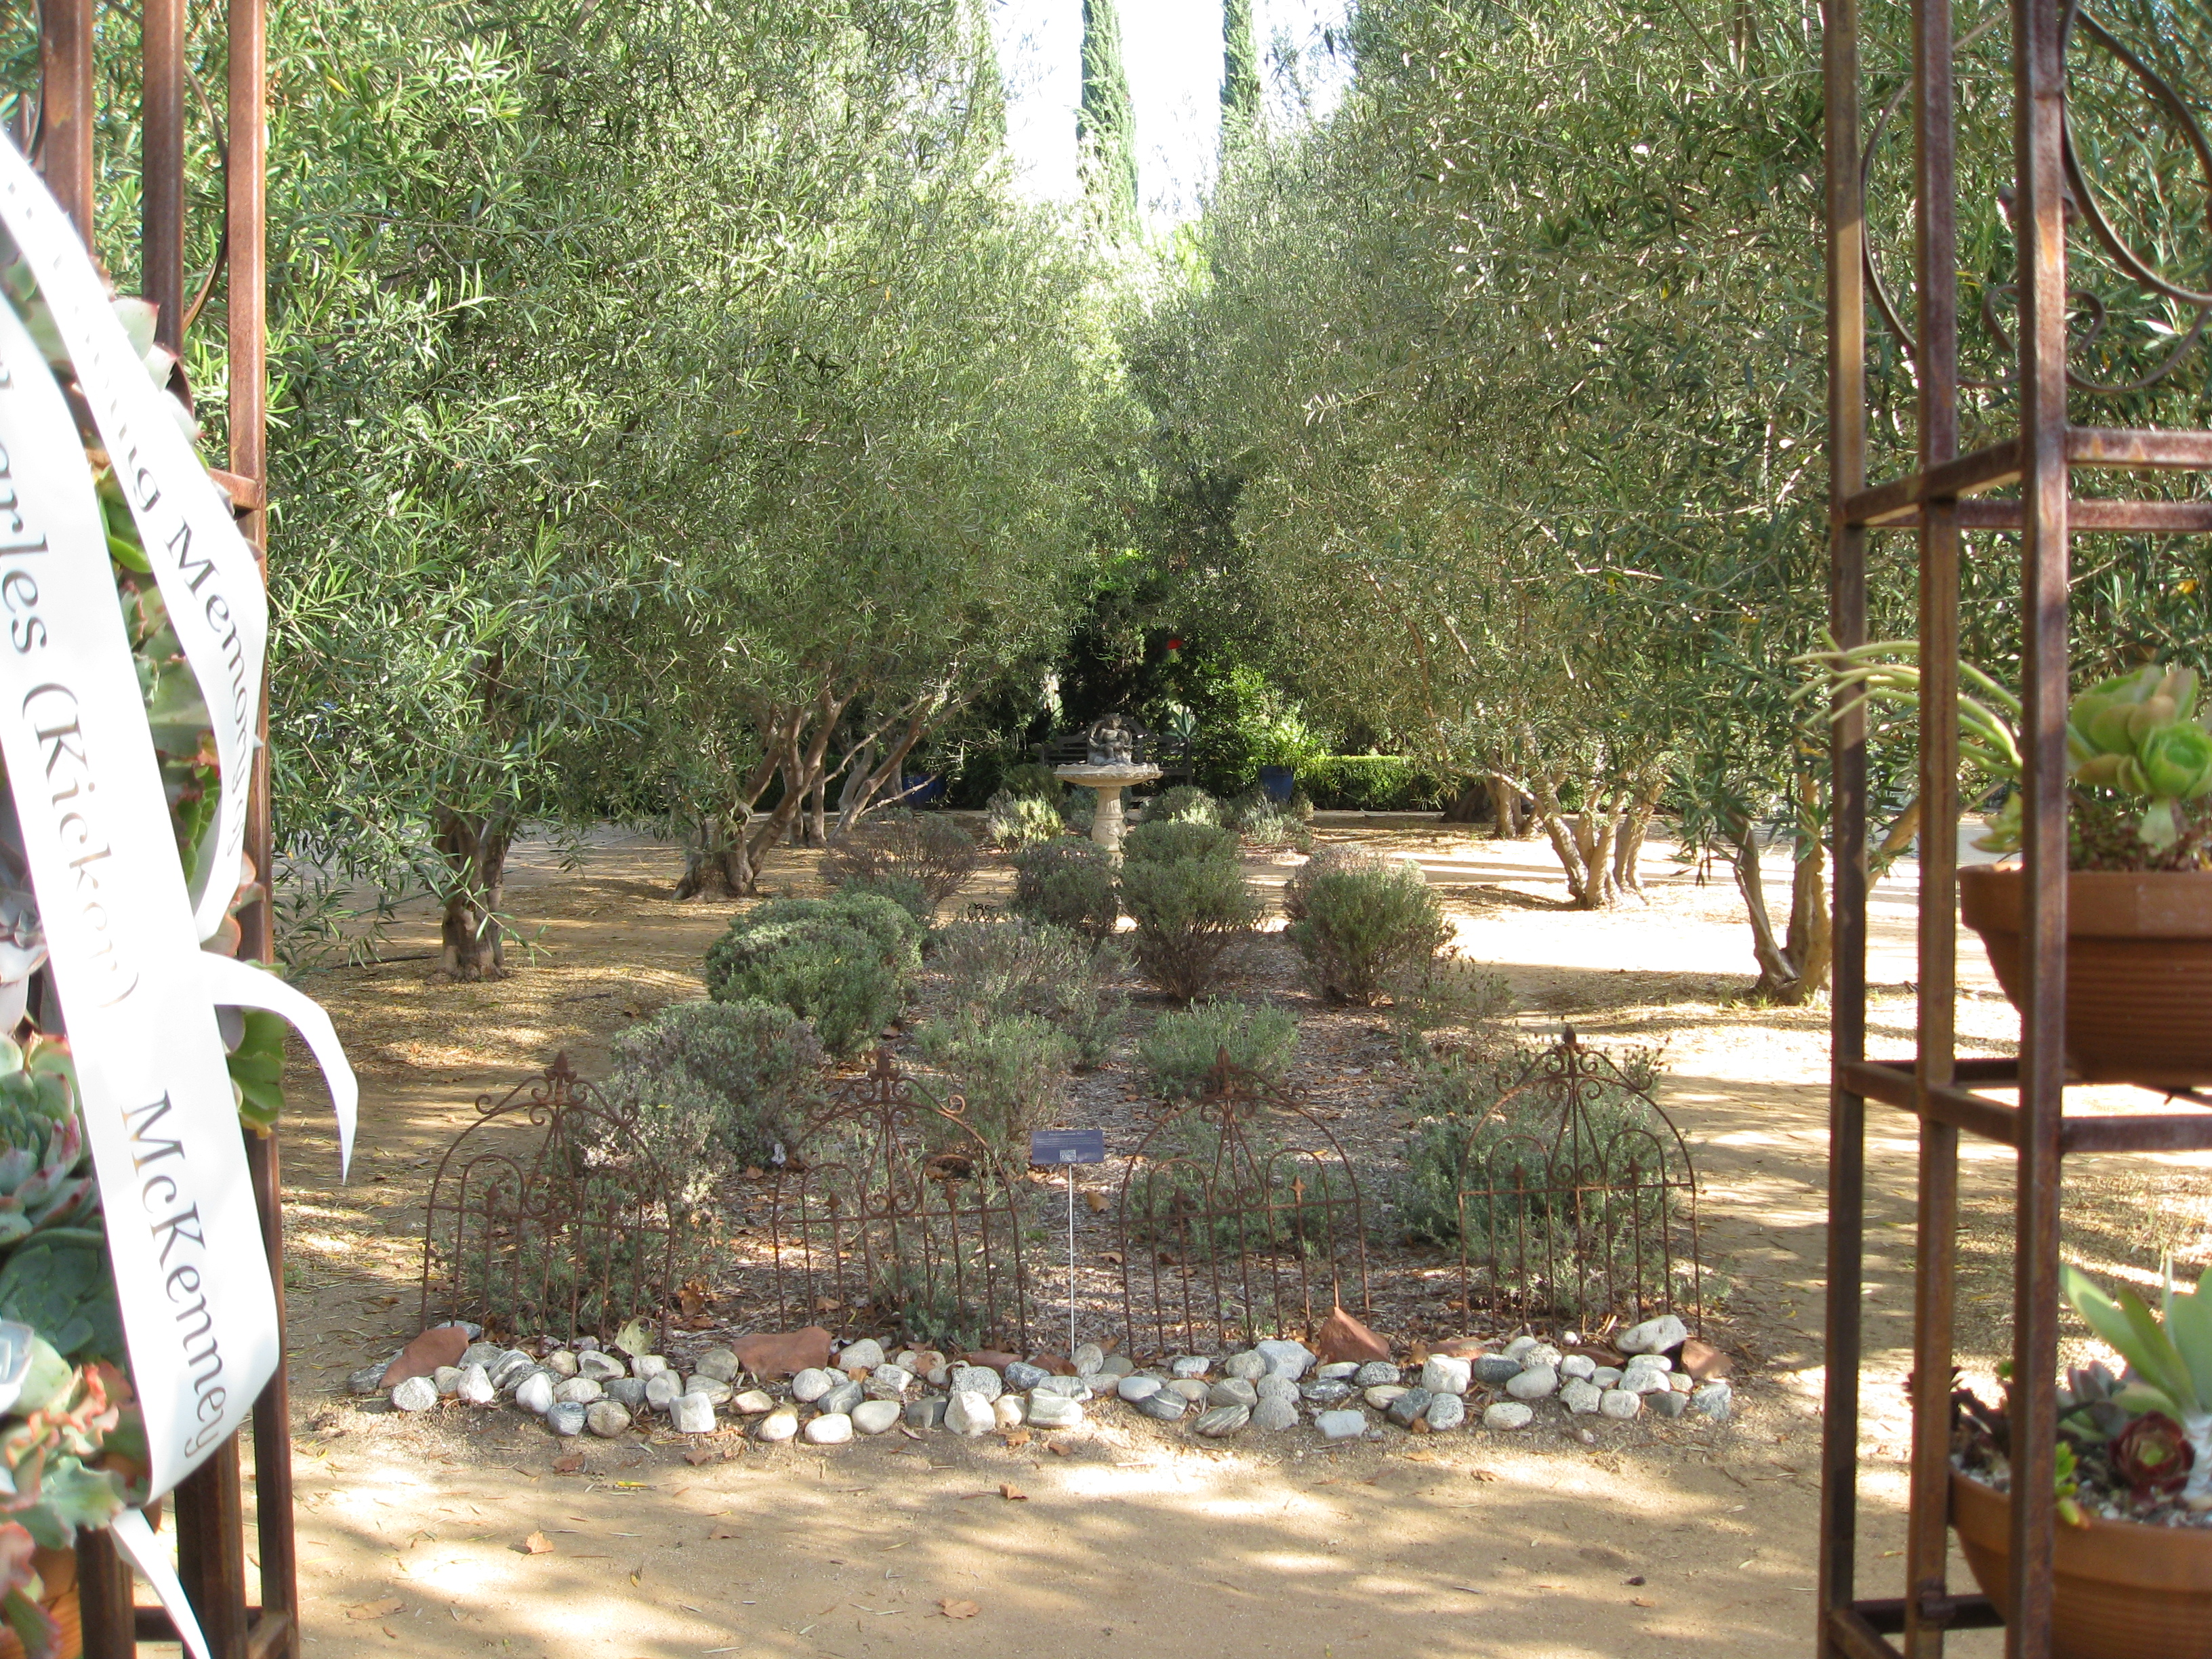 Coming through the gates of the garden, you're greeted by lavender and olive trees.